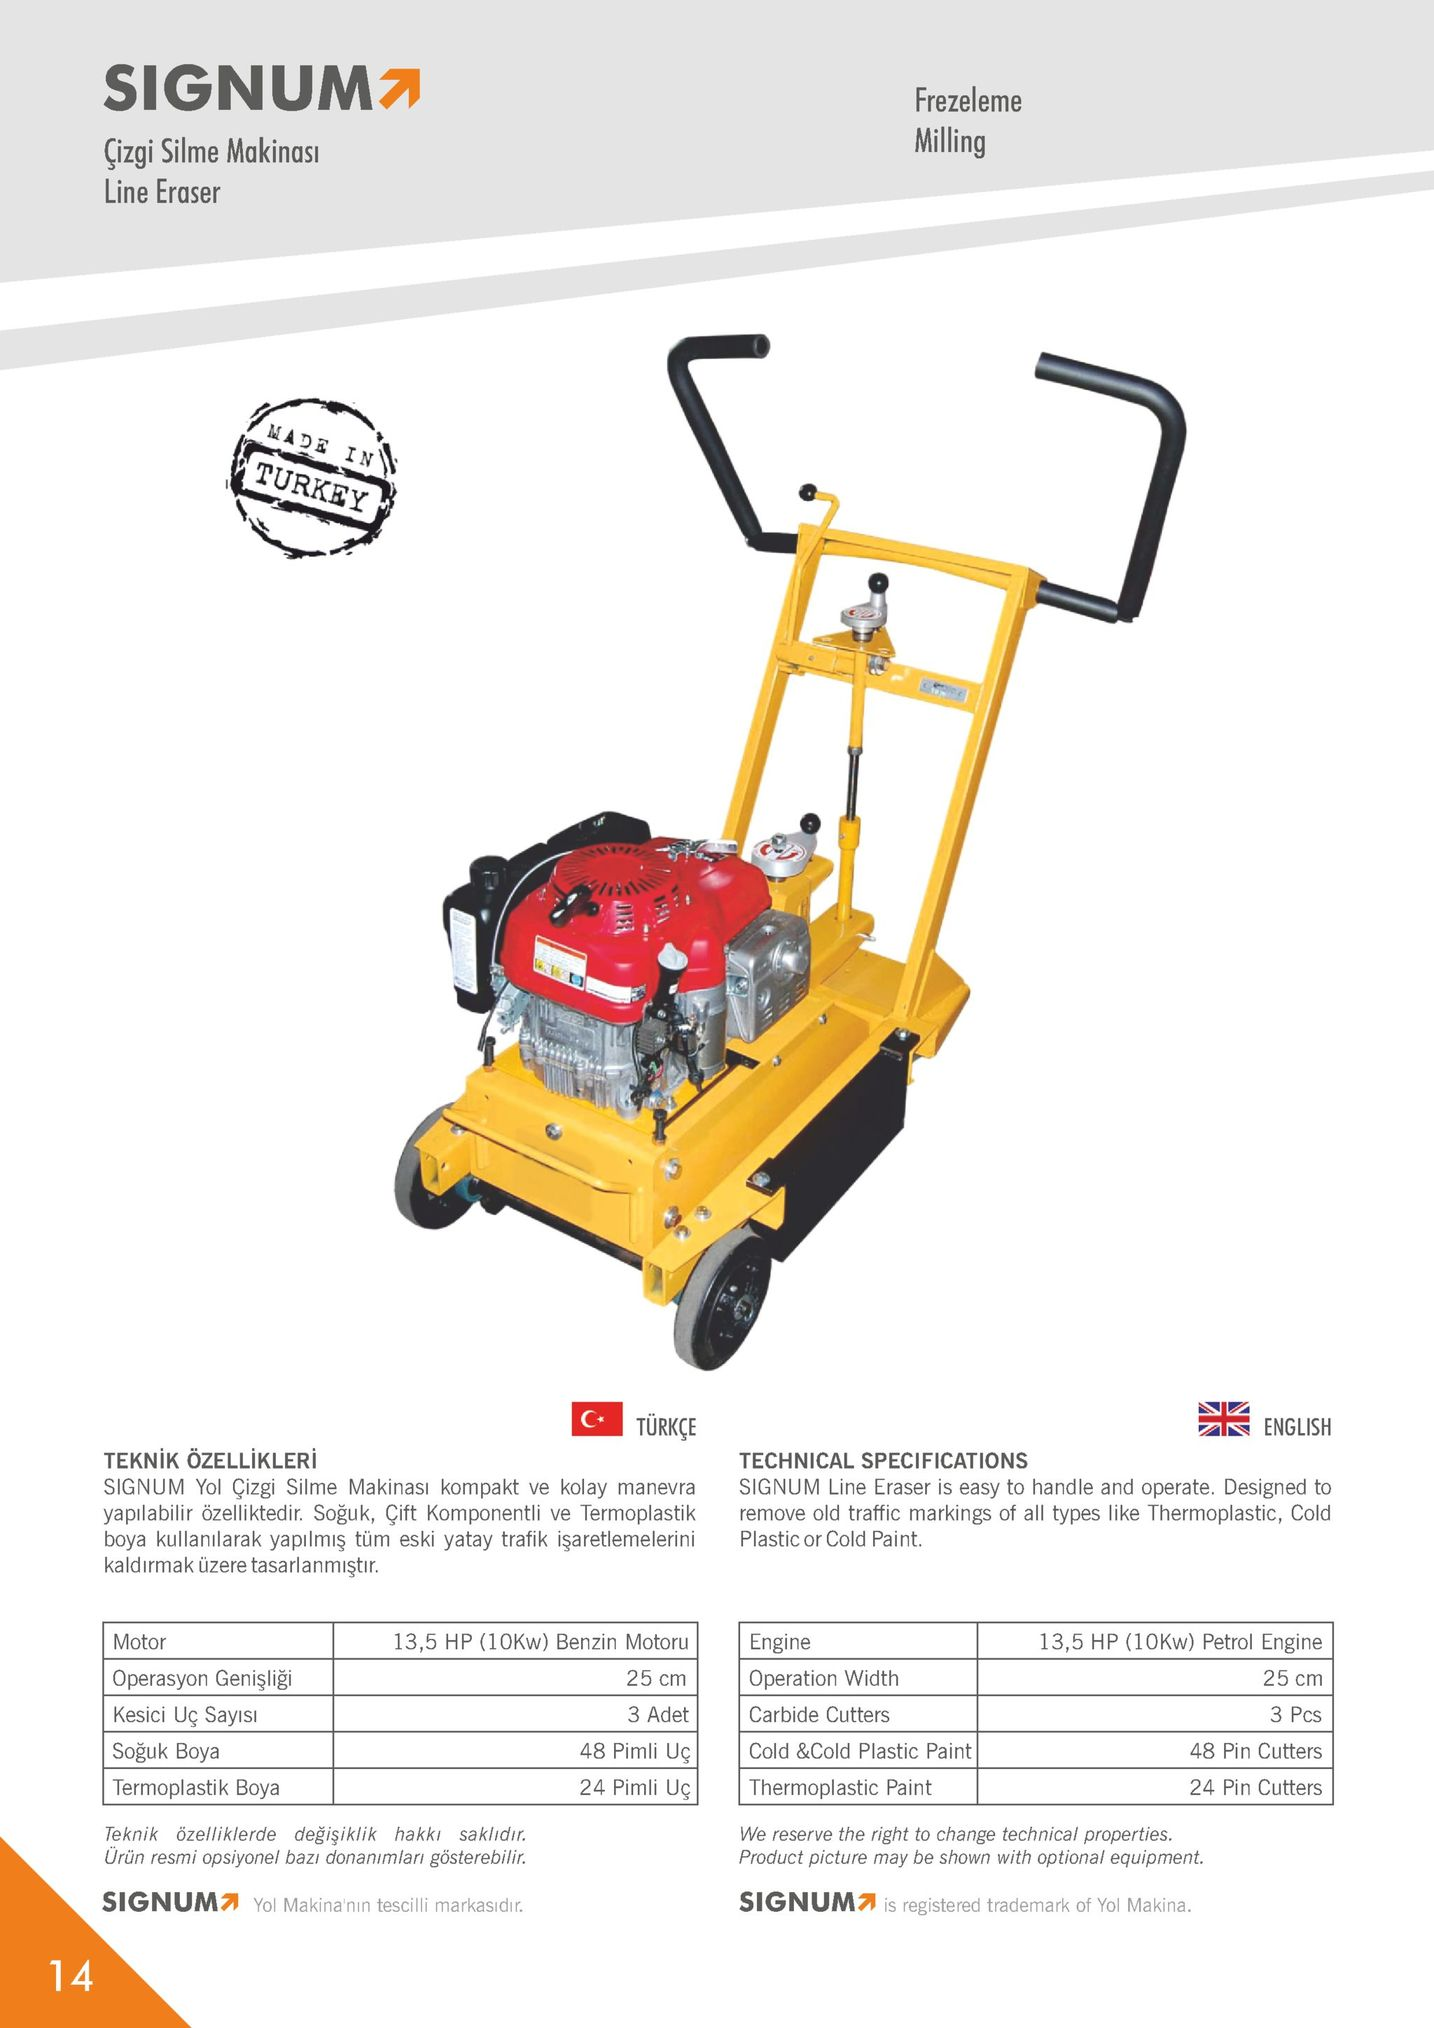 signum frezeleme milling çizgi silme makinas line eraser turkey türkçe english technical specifications teknik ozellikler signum yol çizgi silme makinasi kompakt ve kolay manevra signum line eraser is easy to handle and operate. designed to yapılabilir özelliktedir. soğuk, çift komponentli ve termoplastik remove old traffic markings of all types like thermoplastic, cold boya kullanılarak yapilmiş tüm eski yatay trafik işaretlemelerini plastic or cold paint kaldırmak üzere tasarlanmiştın motor operasyon genişliği kesici uç sayıs soğuk boya termoplastik boya teknik özelliklerde değişiklik hakki saklıdir 13,5 hp (10kw) benzin motoru 25 cm 3 adet 48 pimli uç 24 pimli uç engine operation width carbide cutters cold &cold plastic paint thermoplastic paint we reserve the right to change technical properties. 13,5 hp (10kw) petrol engine 25 cm 3 pcs 48 pin cutters 24 pin cutters urün resmi opsiyonel bazı donanimlari gösterebilir. product picture may be shown with optional equipment signum7 yol makina'nın tescilli markasıdır signum is registered trademark of yol makina.